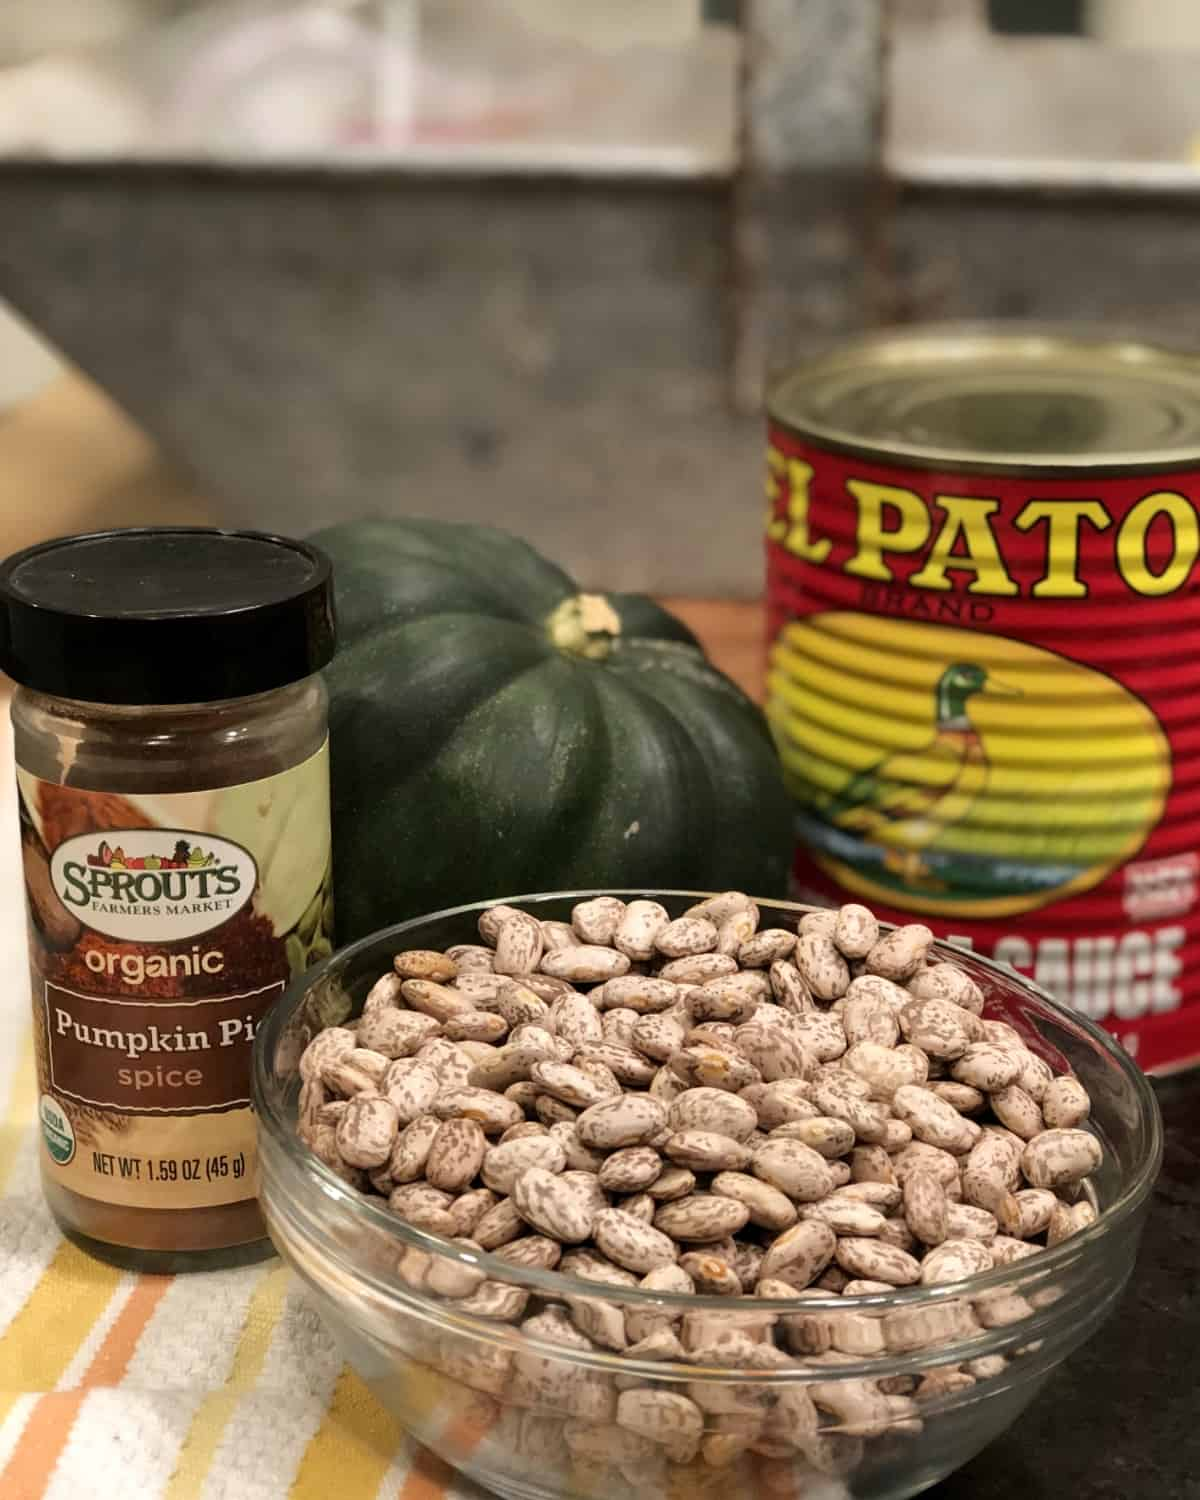 Uncooked pinto beans, pumpkin pie spice, acorn squash and can of enchilada sauce on kitchen counter.